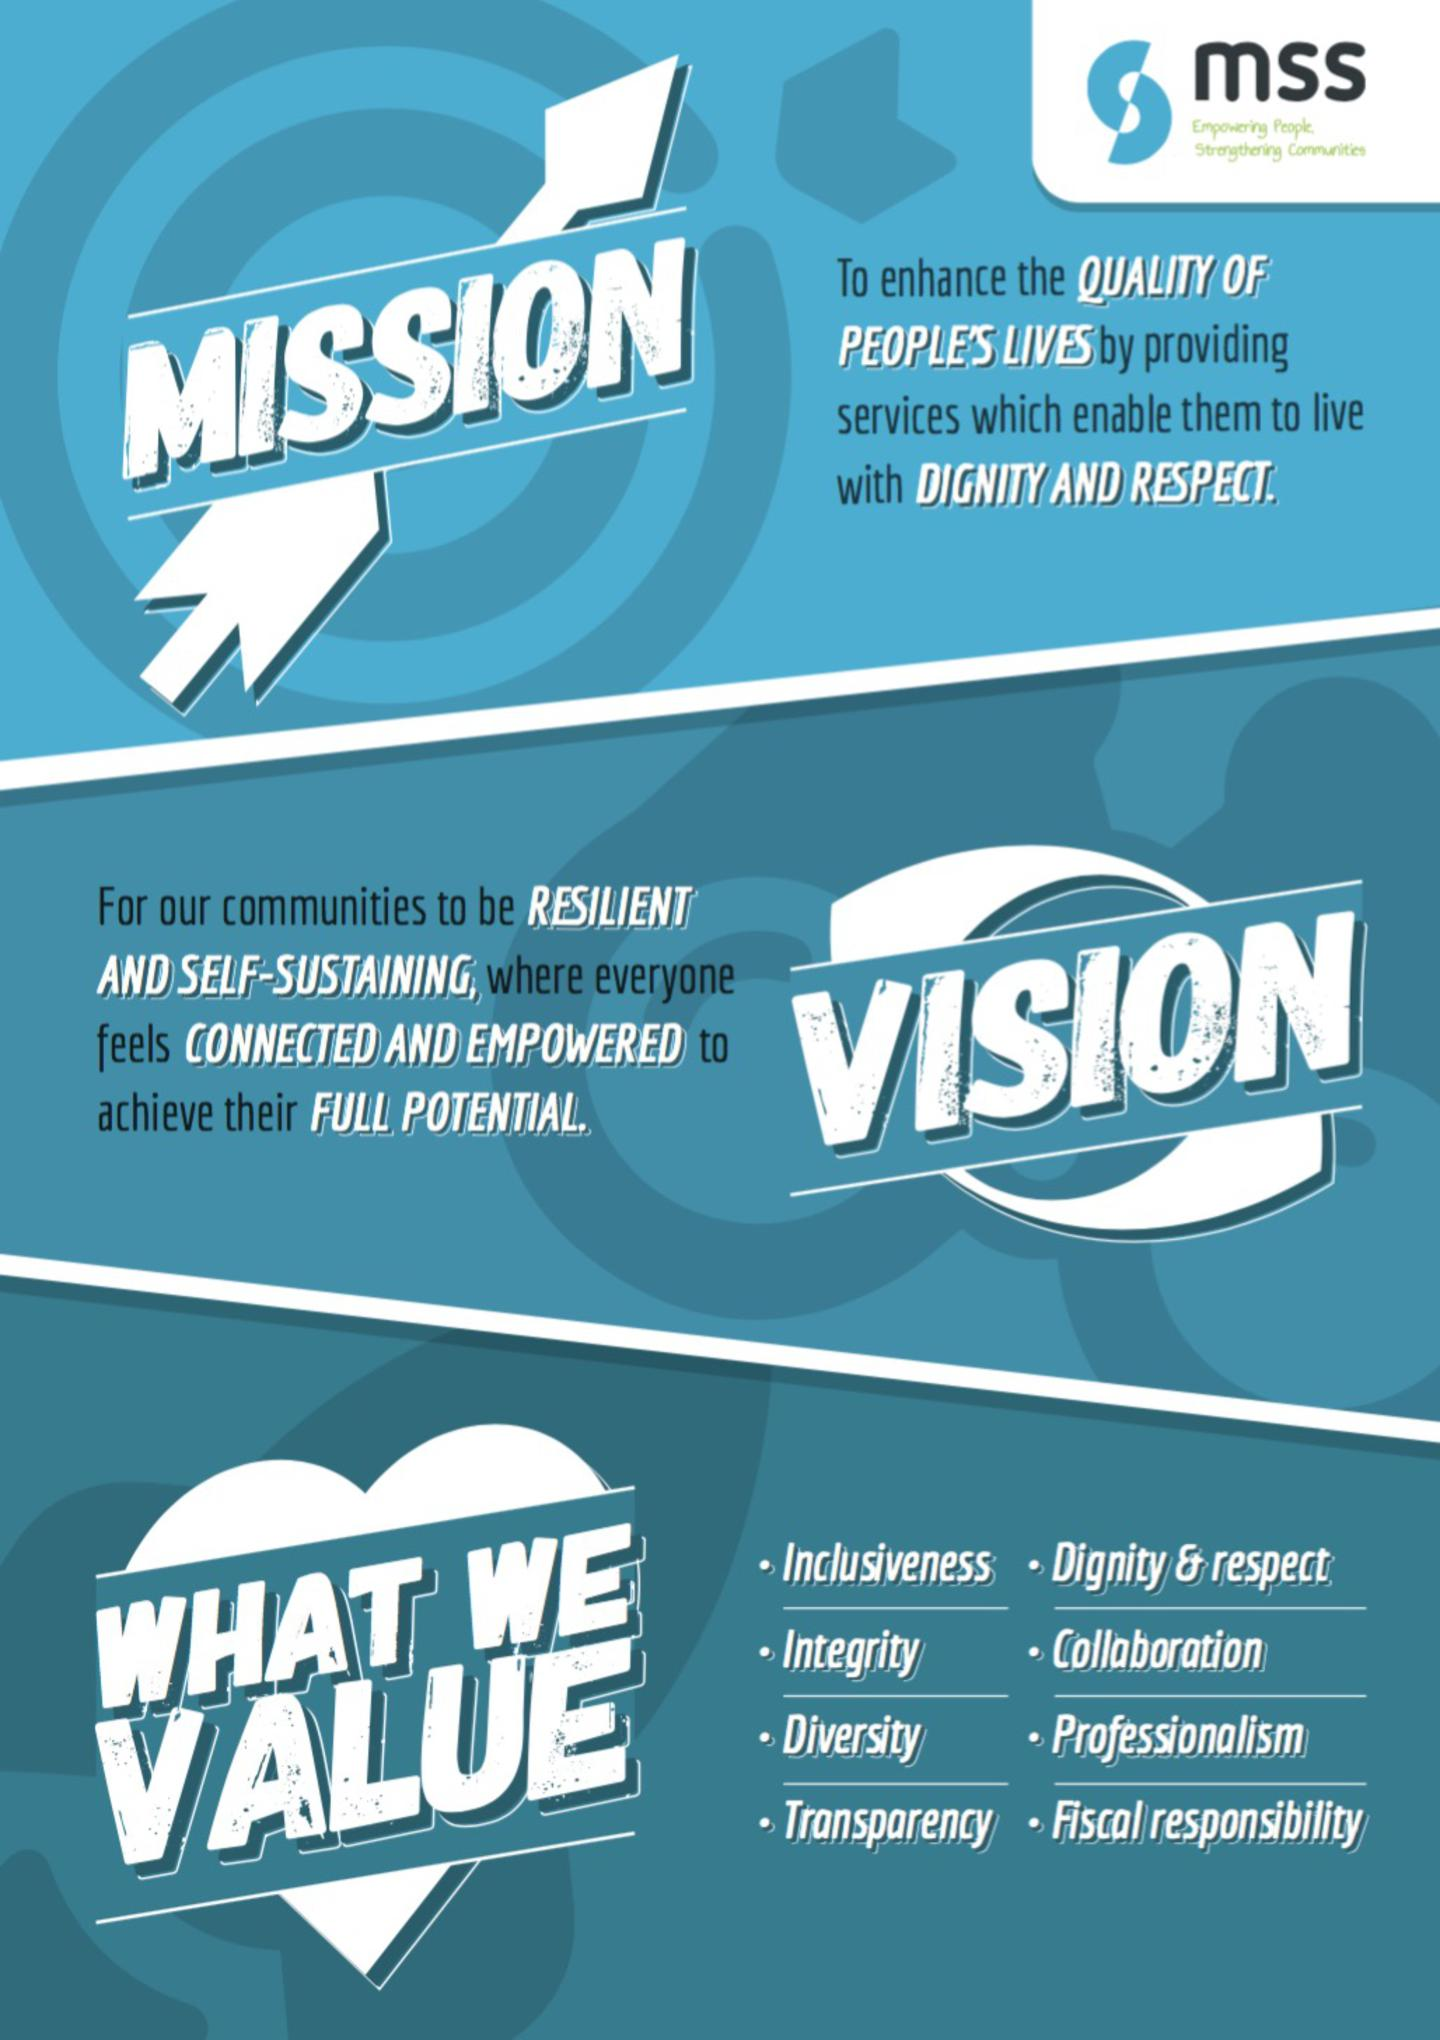 mission-vission-values